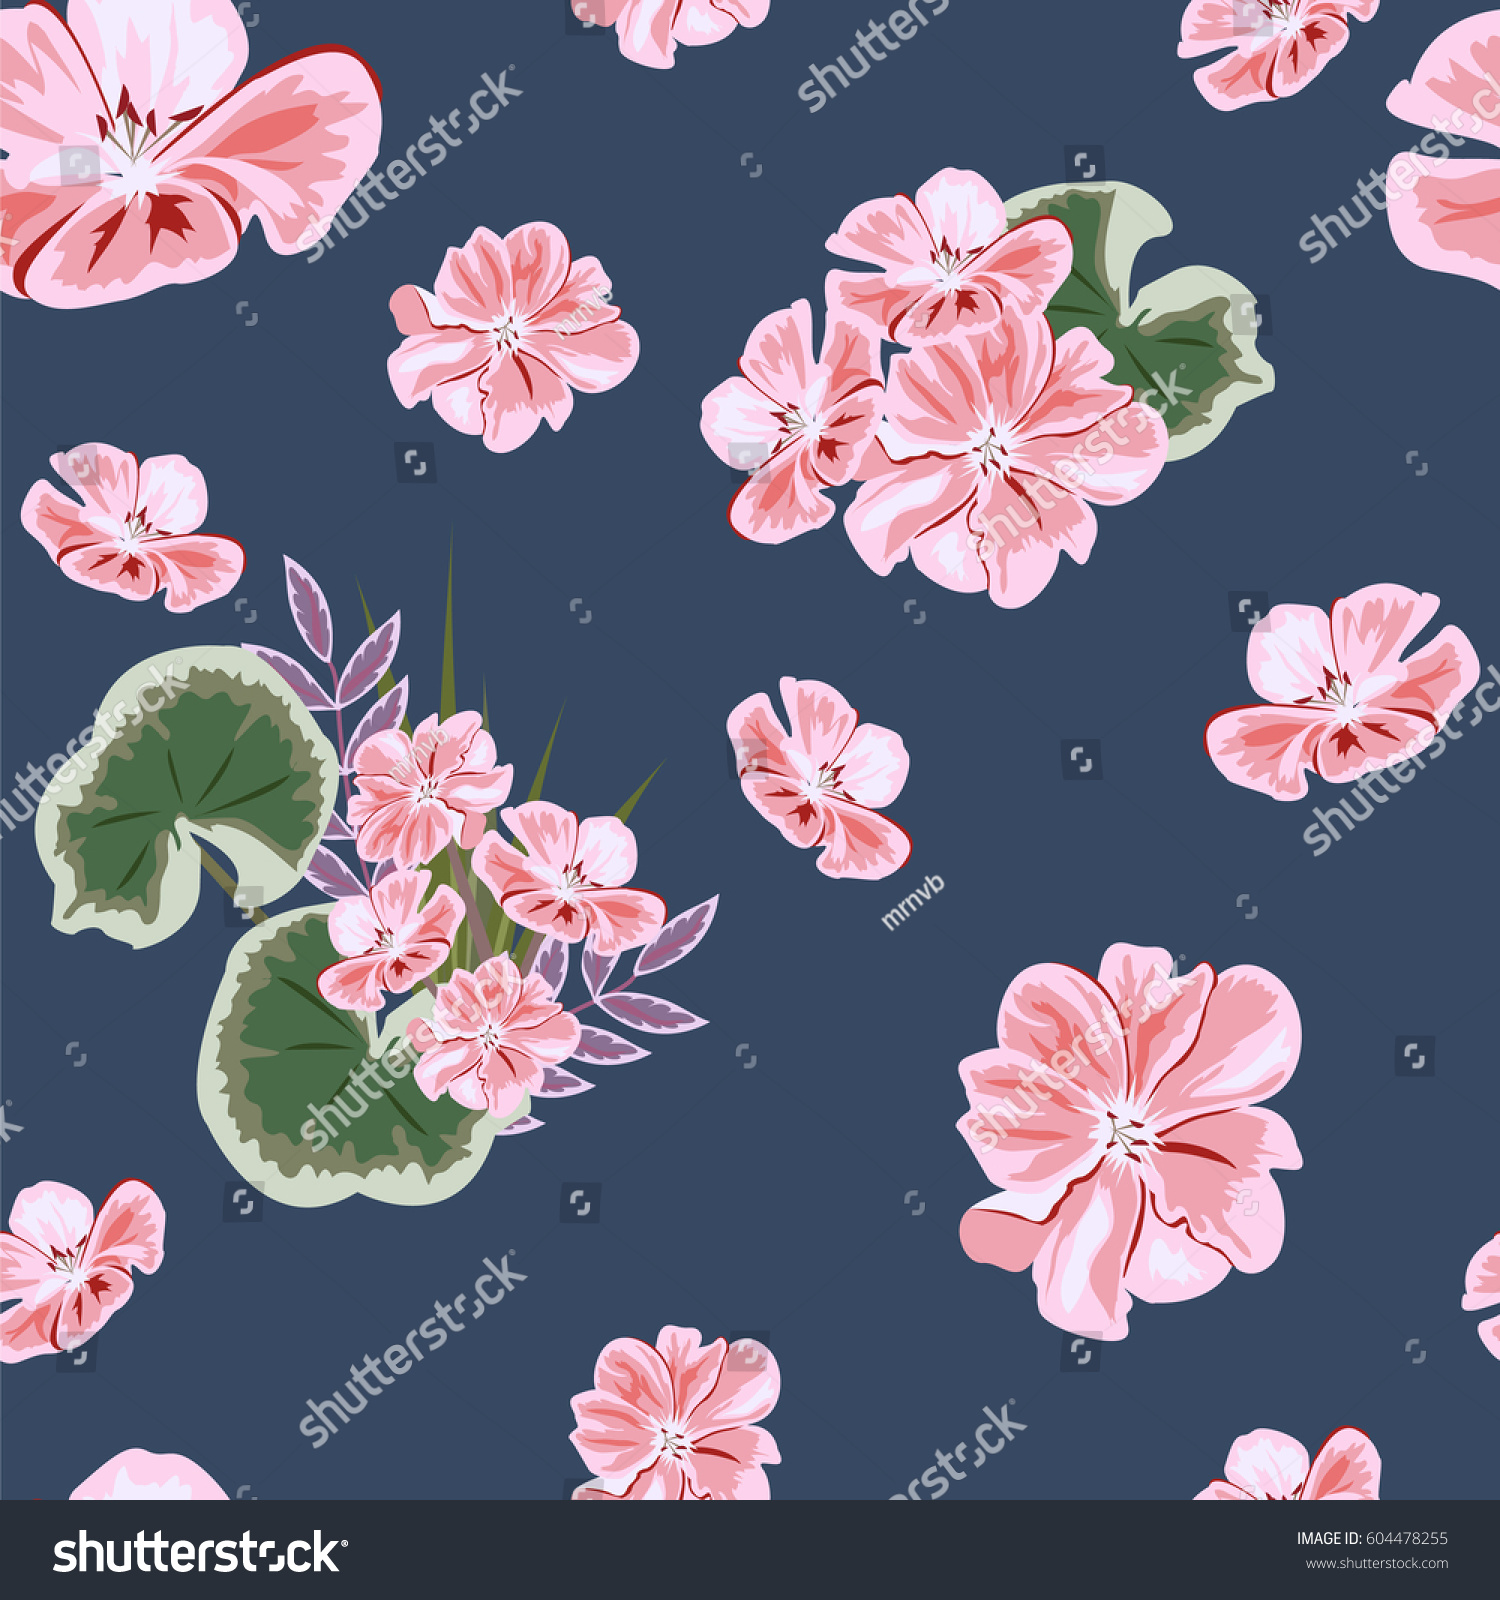 Vintage Seamless Pattern With Cute Pink Flowers Hand Drawn Floral